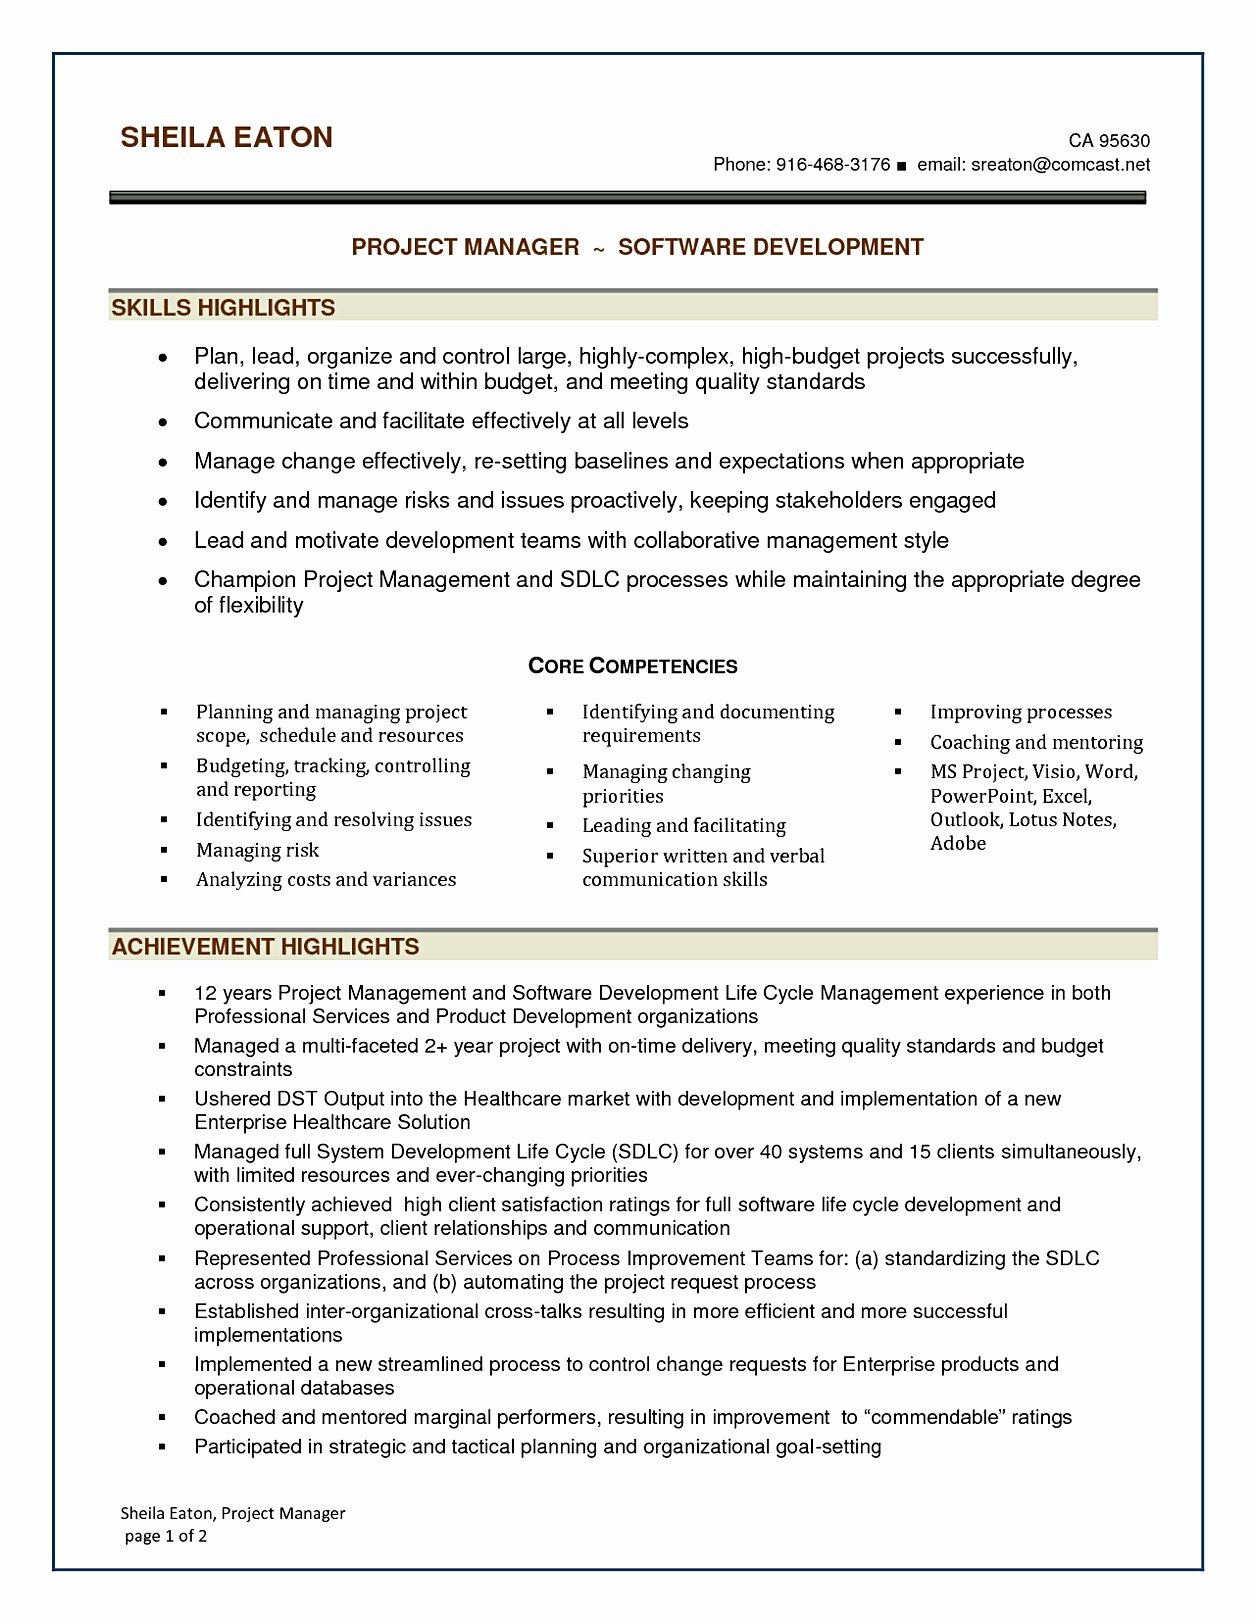 Project Manager Resume Template New software Project Manager Resume